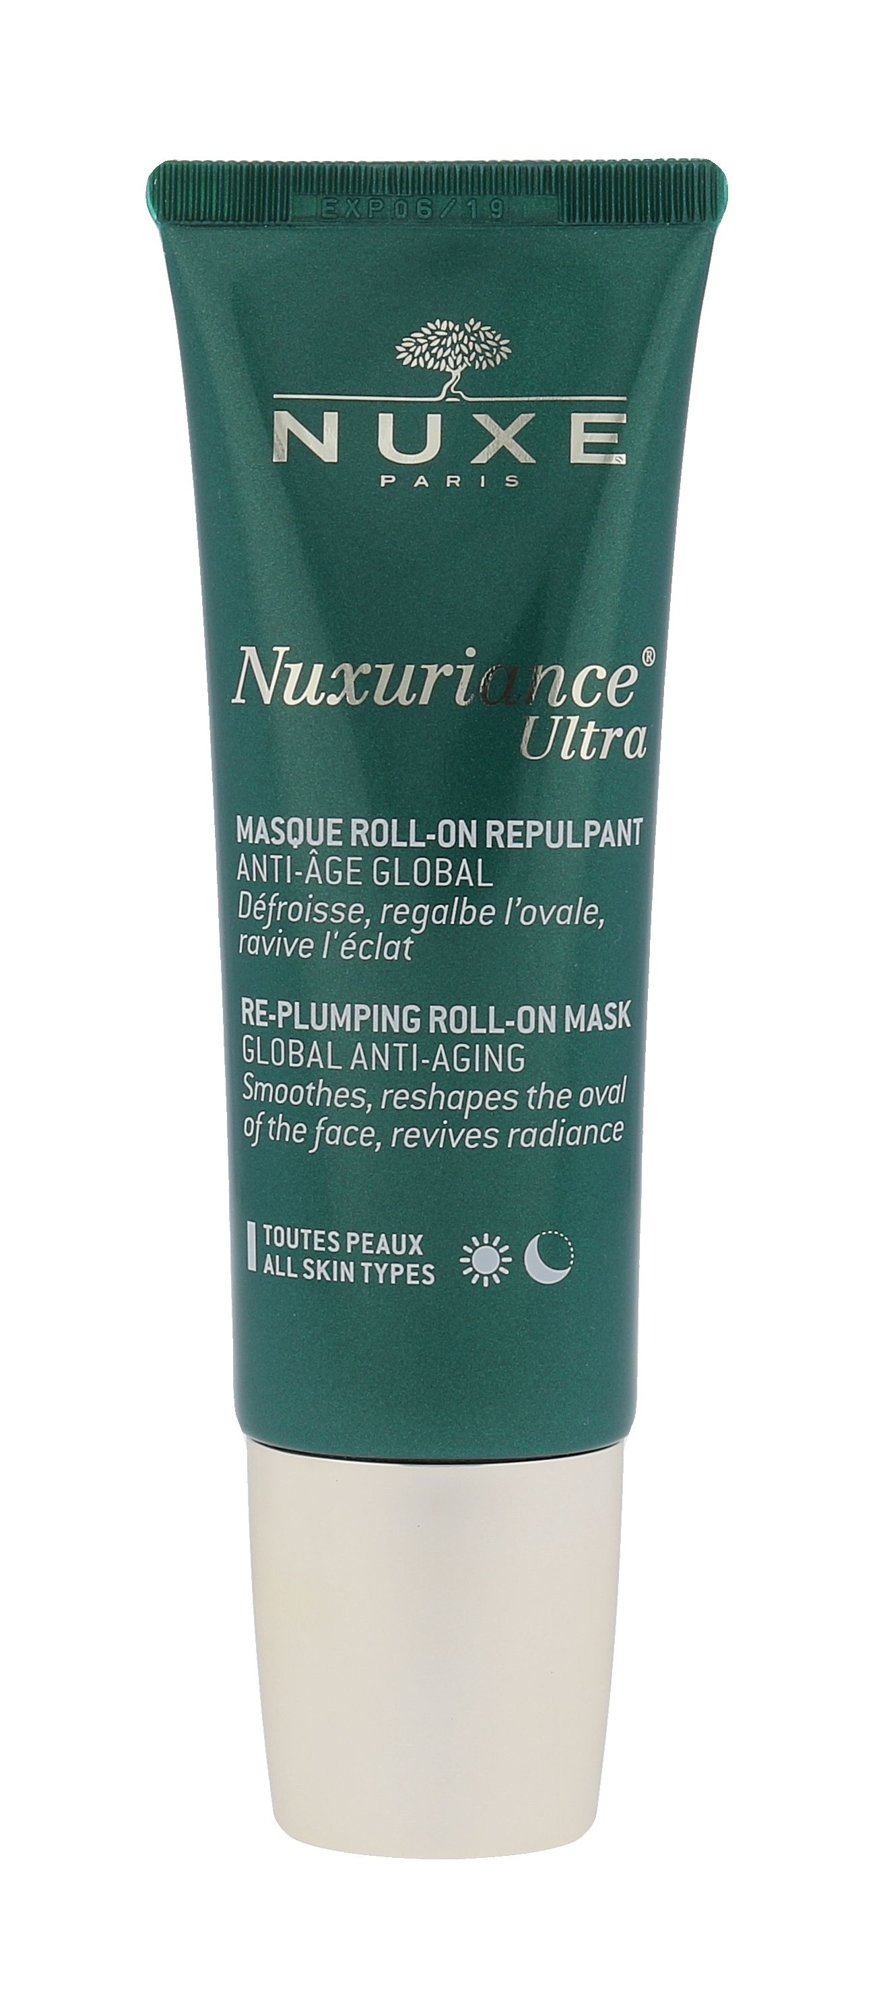 Nuxe Nuxuriance Ultra Re-Plumping Roll-On Mask Cosmetic 50ml